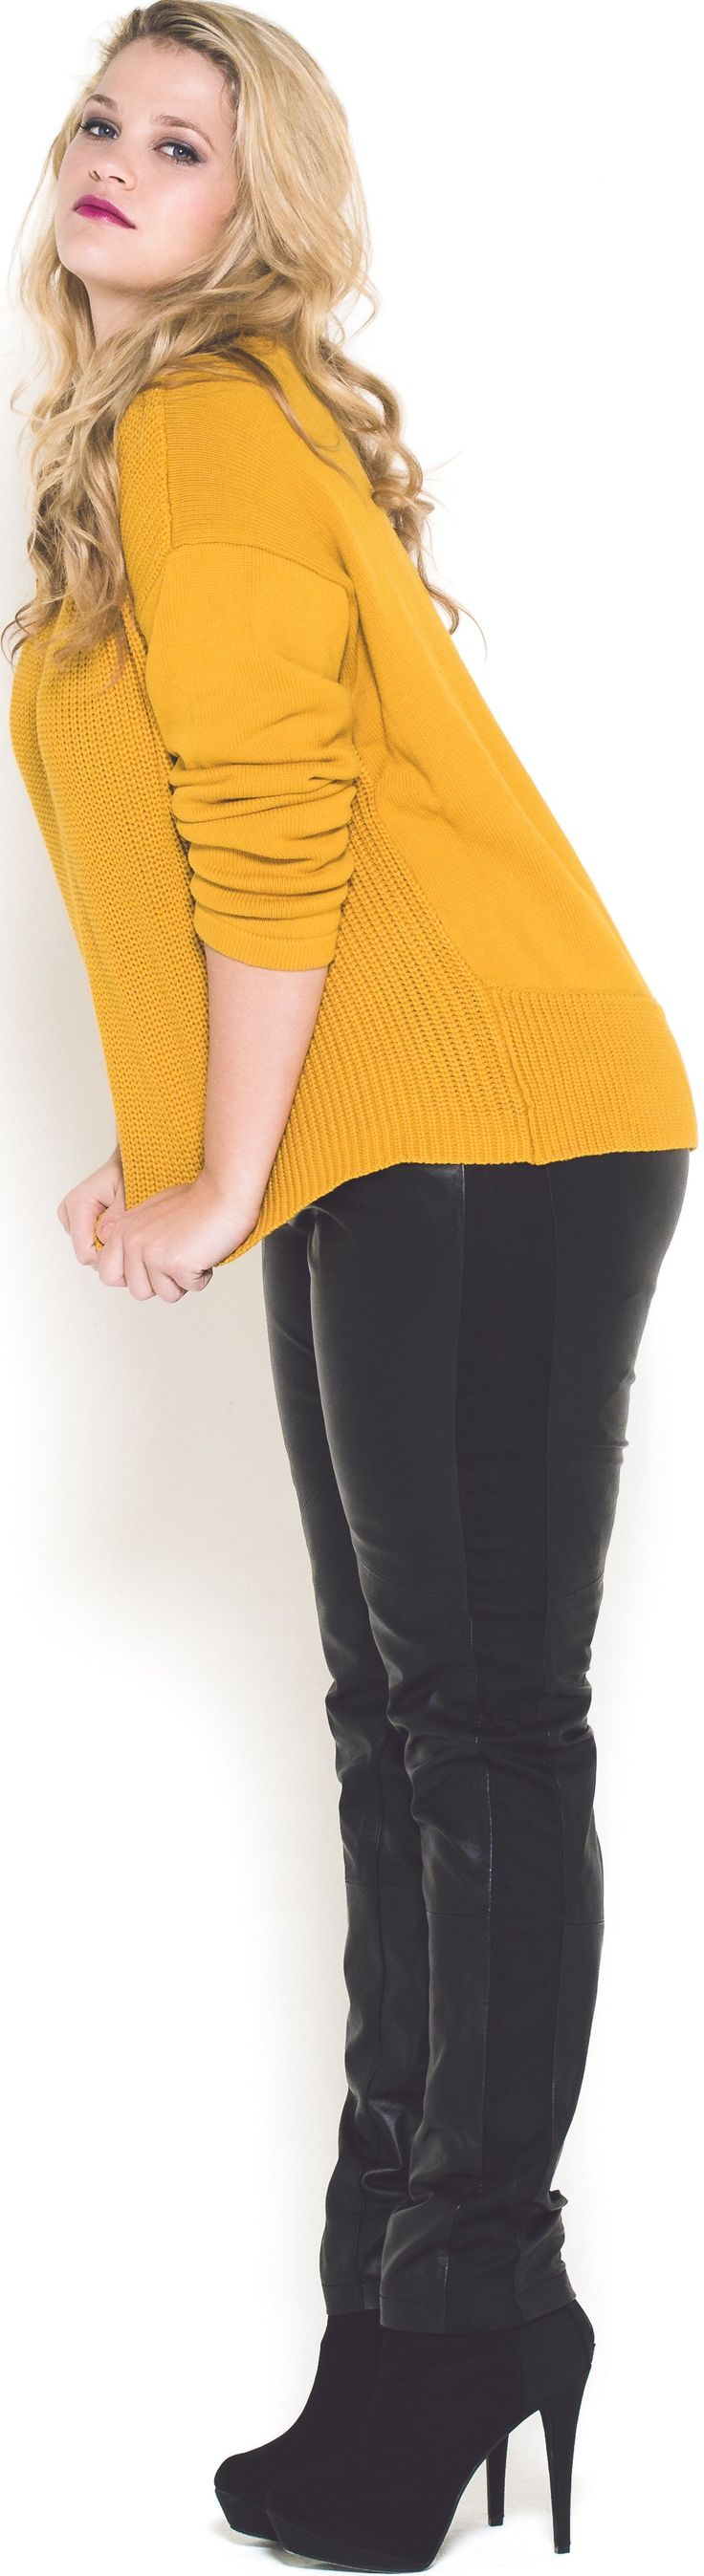 Cute yellow plus-size designer sweater for fall & winter. Read article about designer brands and boutique websites with international shipping. This is not the old article: http://www.boomerinas.com/2014/10/29/trendy-plus-size-clothing-stores-online-29-boutiques-designers-worldwide-with-us-delivery/